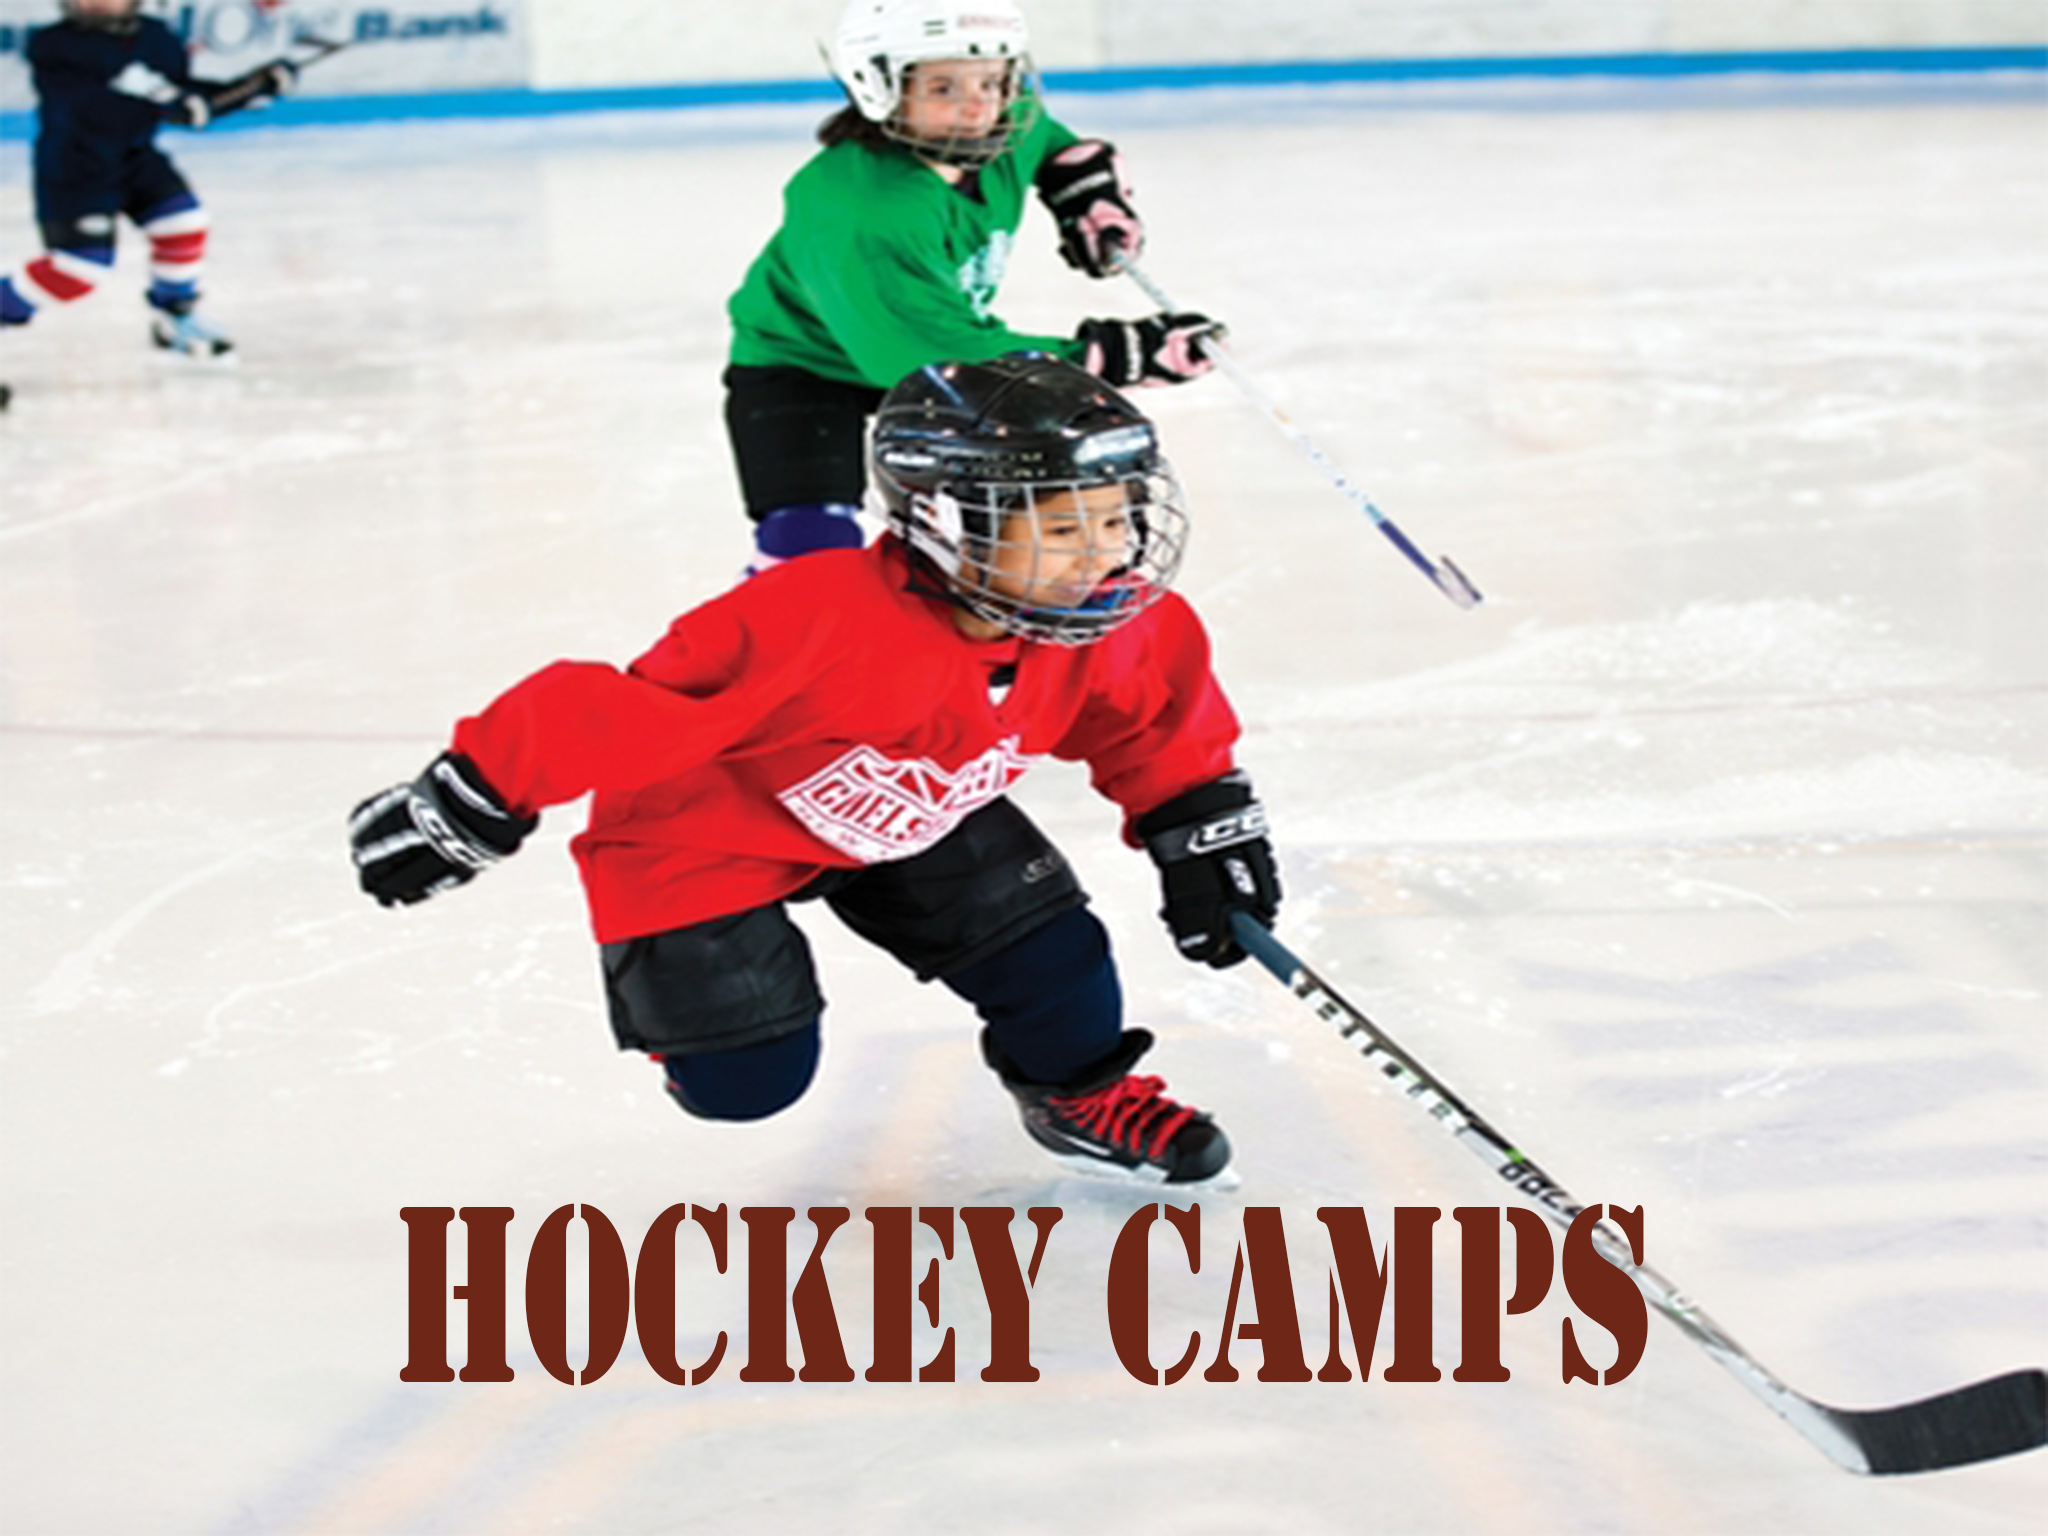 HockeyCampsGraphic